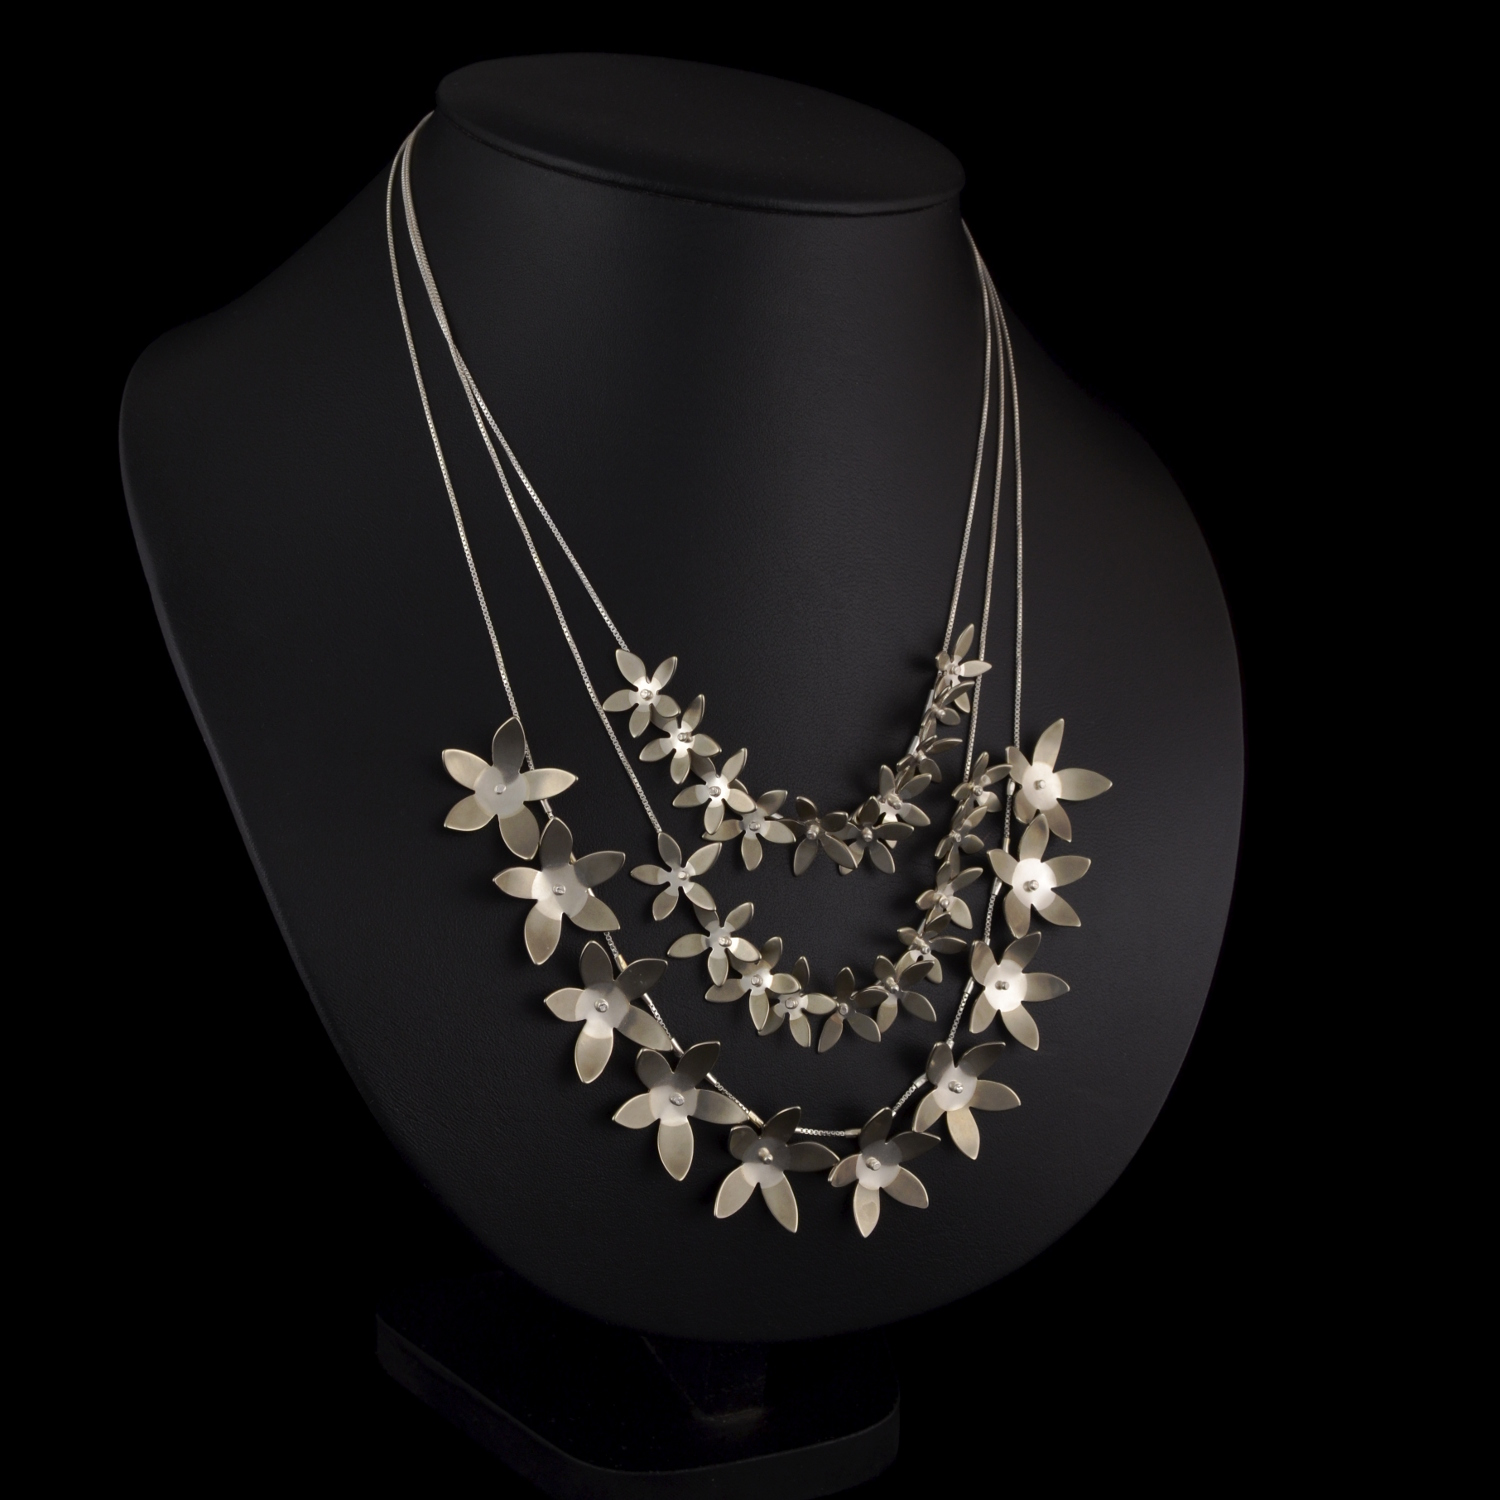 Multi-tiered flower necklace from the Flowers Collection. This necklace also separates so that it can be worn as single necklaces also.